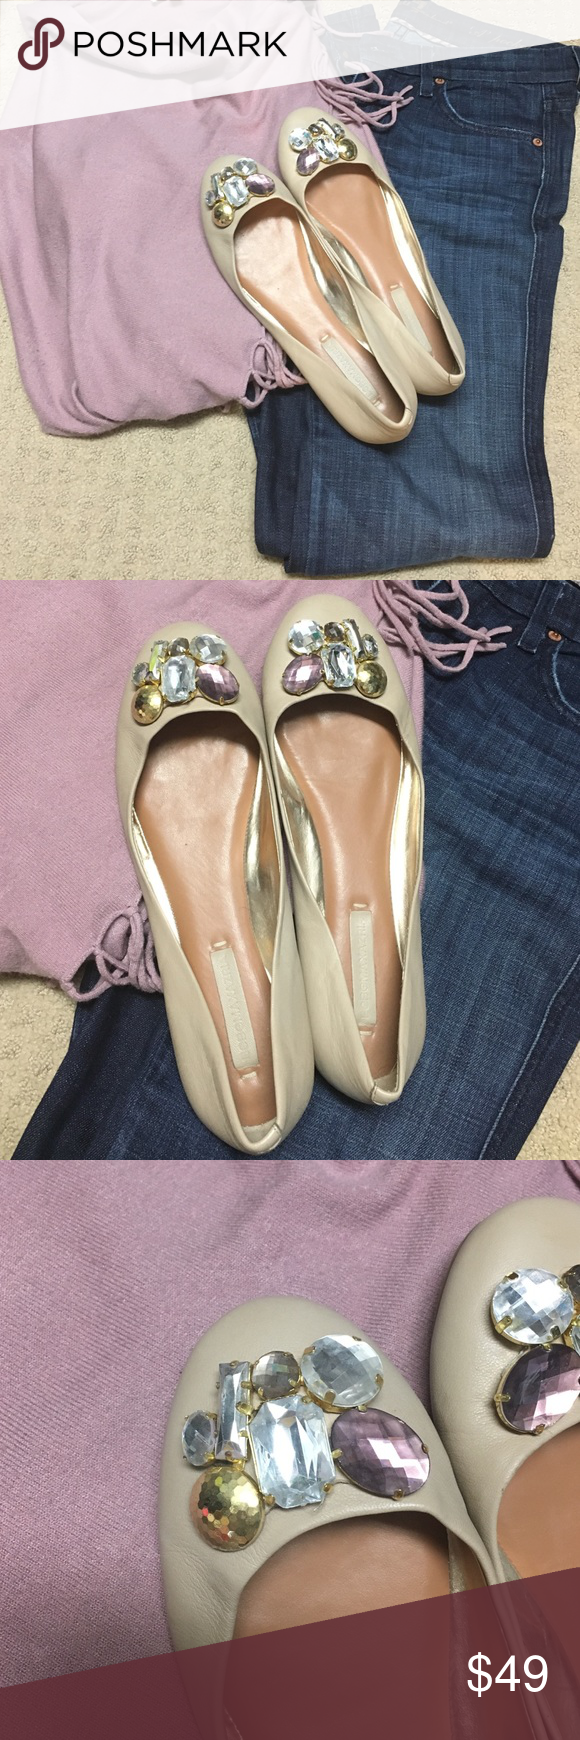 BCBG nude flats These are beautiful BCBG nude flats with diamond accents. Size 9.5. Only worn once and realized they were to small. Sadly they must go. BCBG Shoes Flats & Loafers